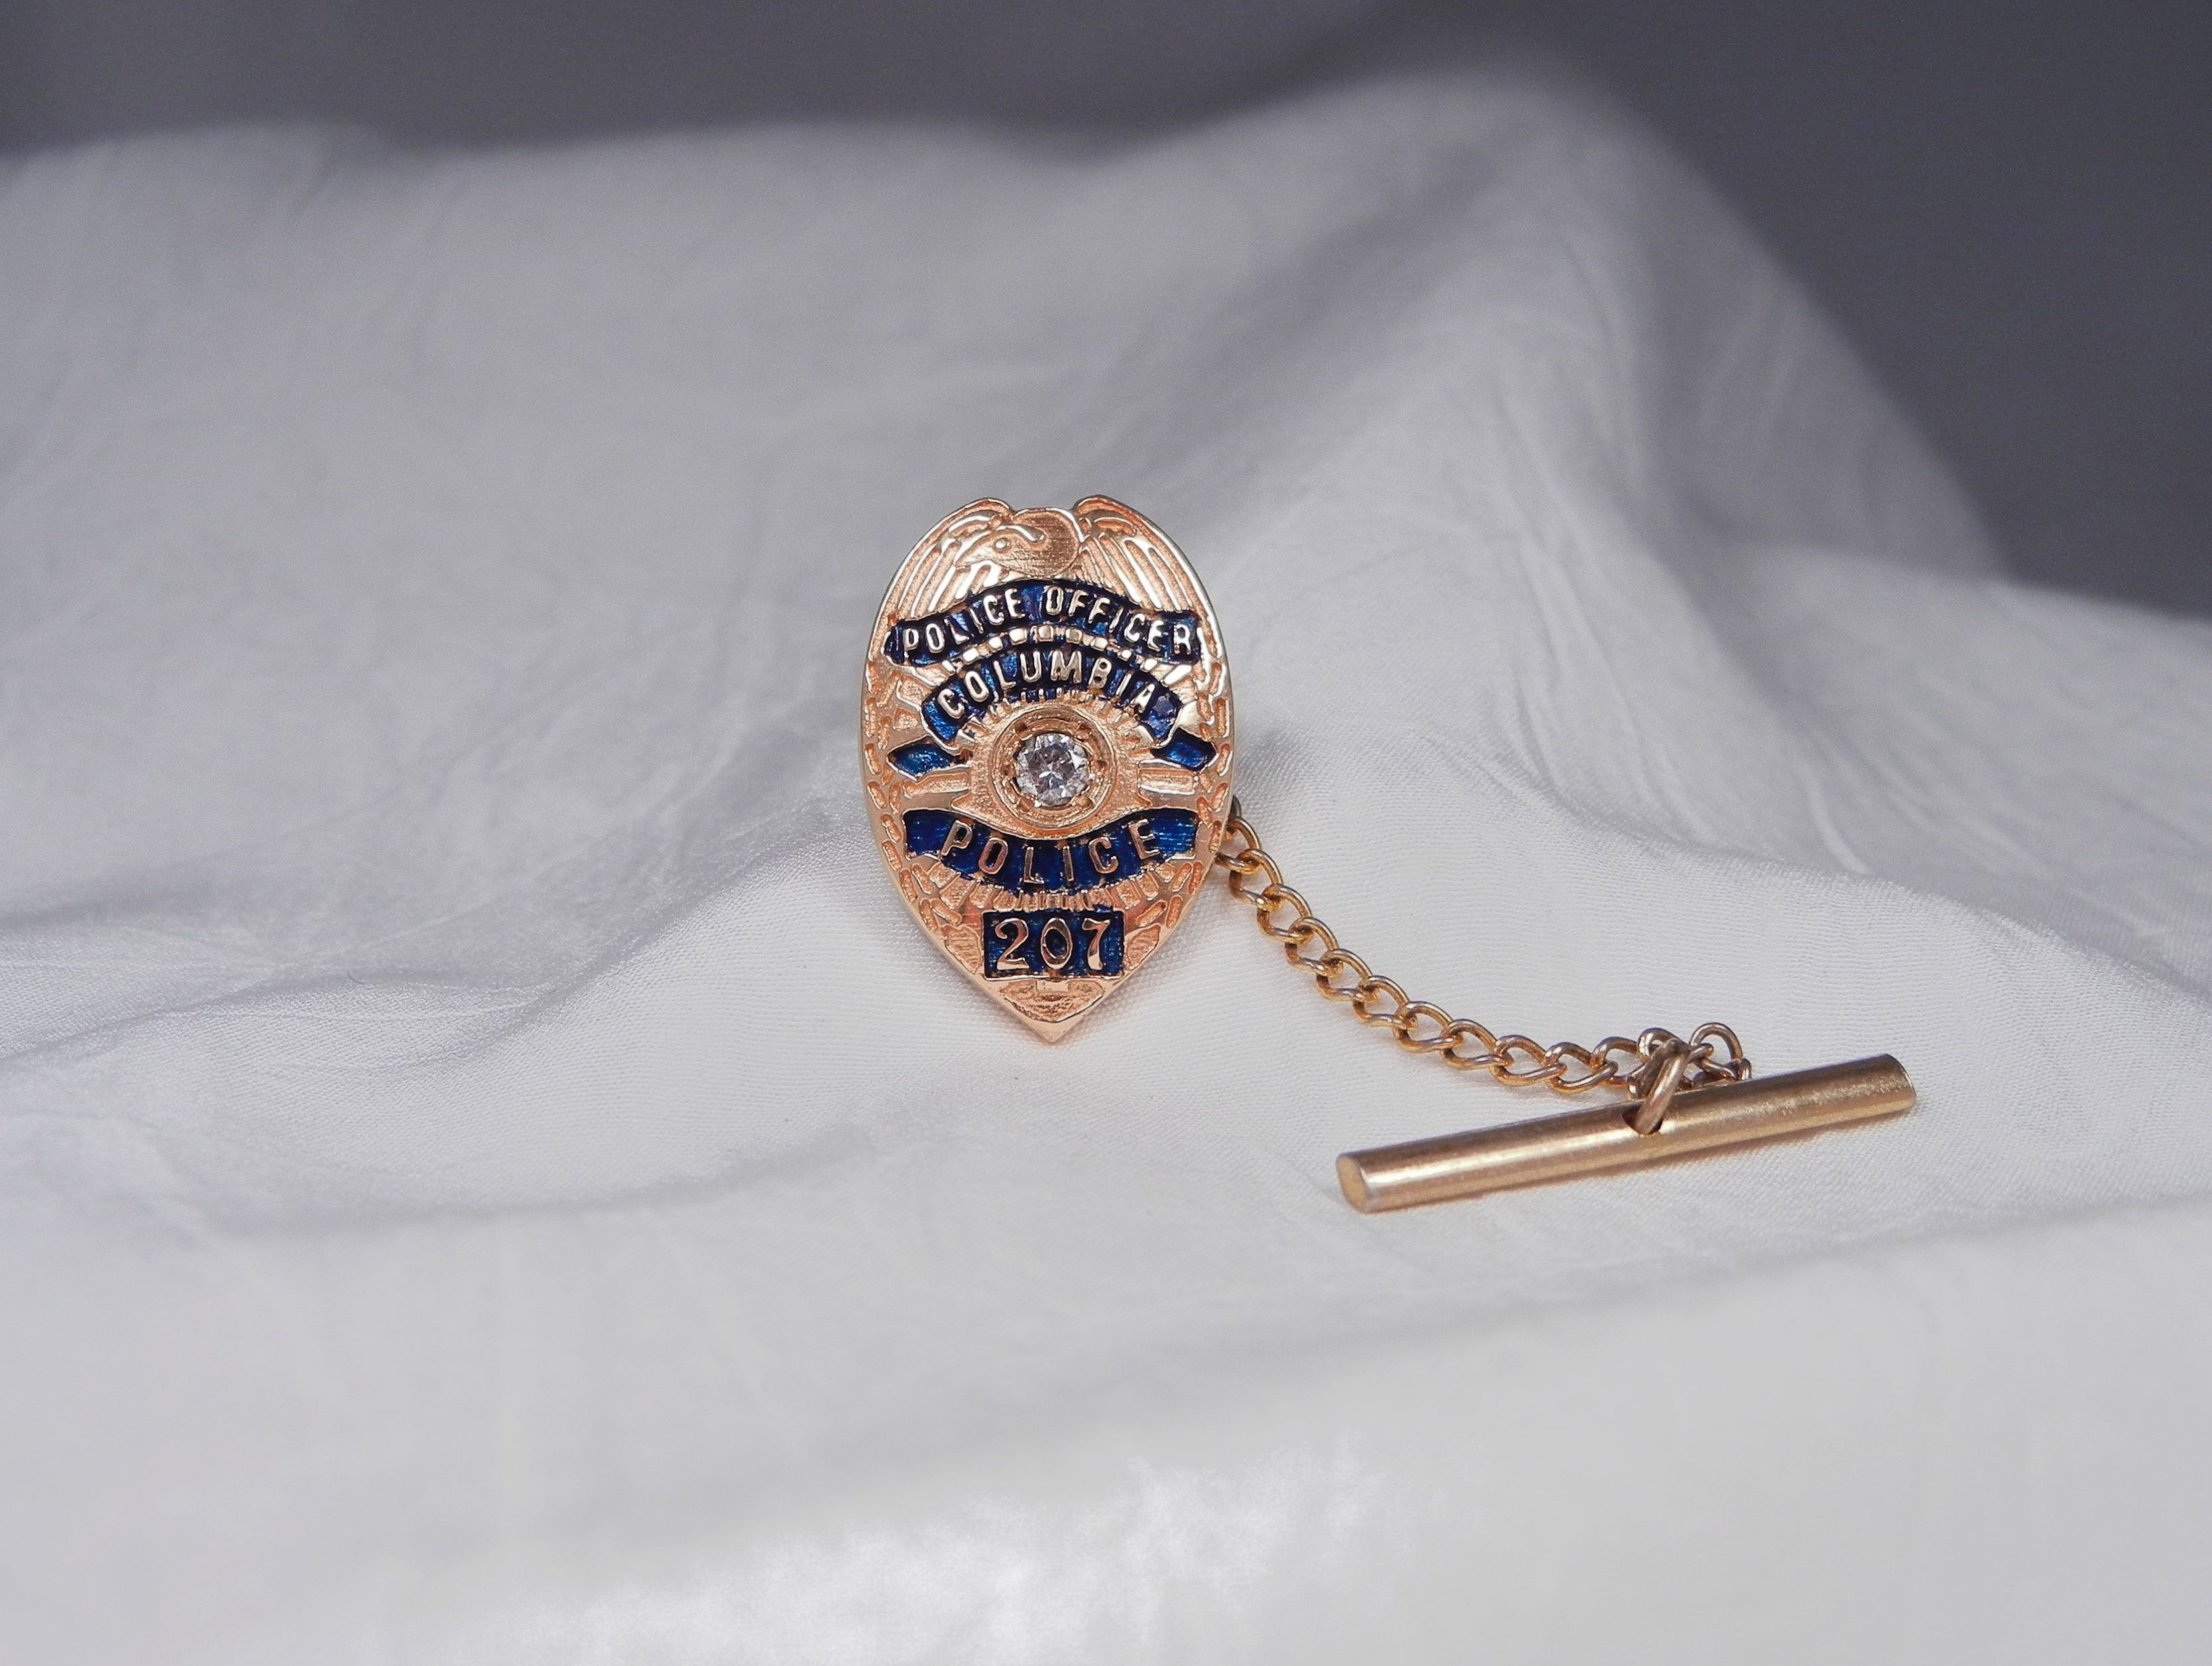 copy berlin shop police pendant favshop awards criminal badge